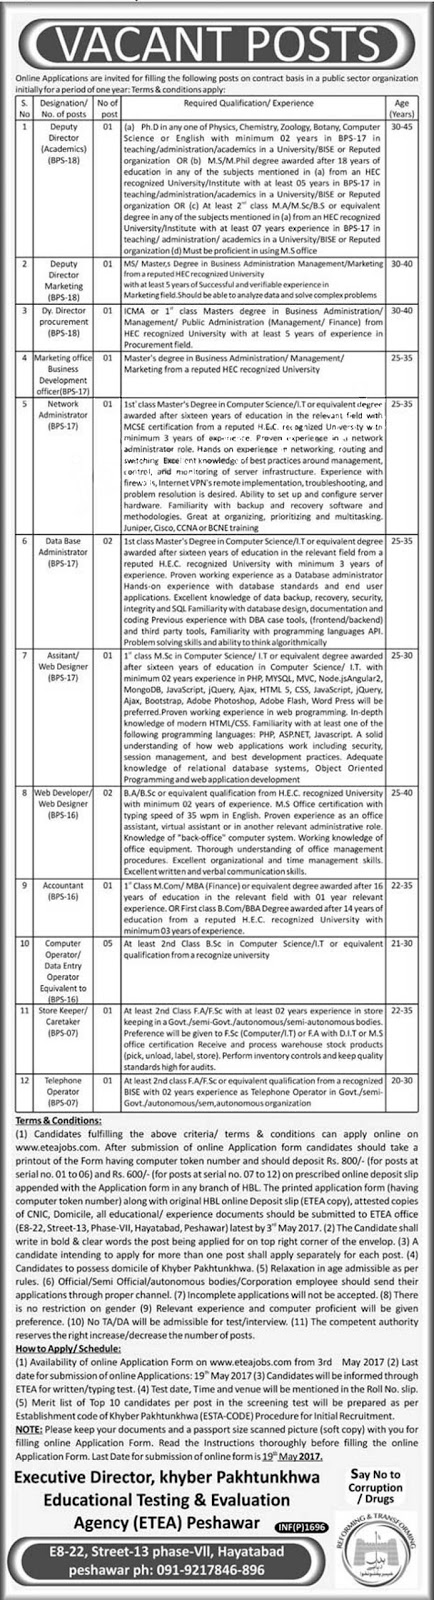 Educational Testing And Evaluation Agency 2017 hayatabad Jobs  19 April 2017